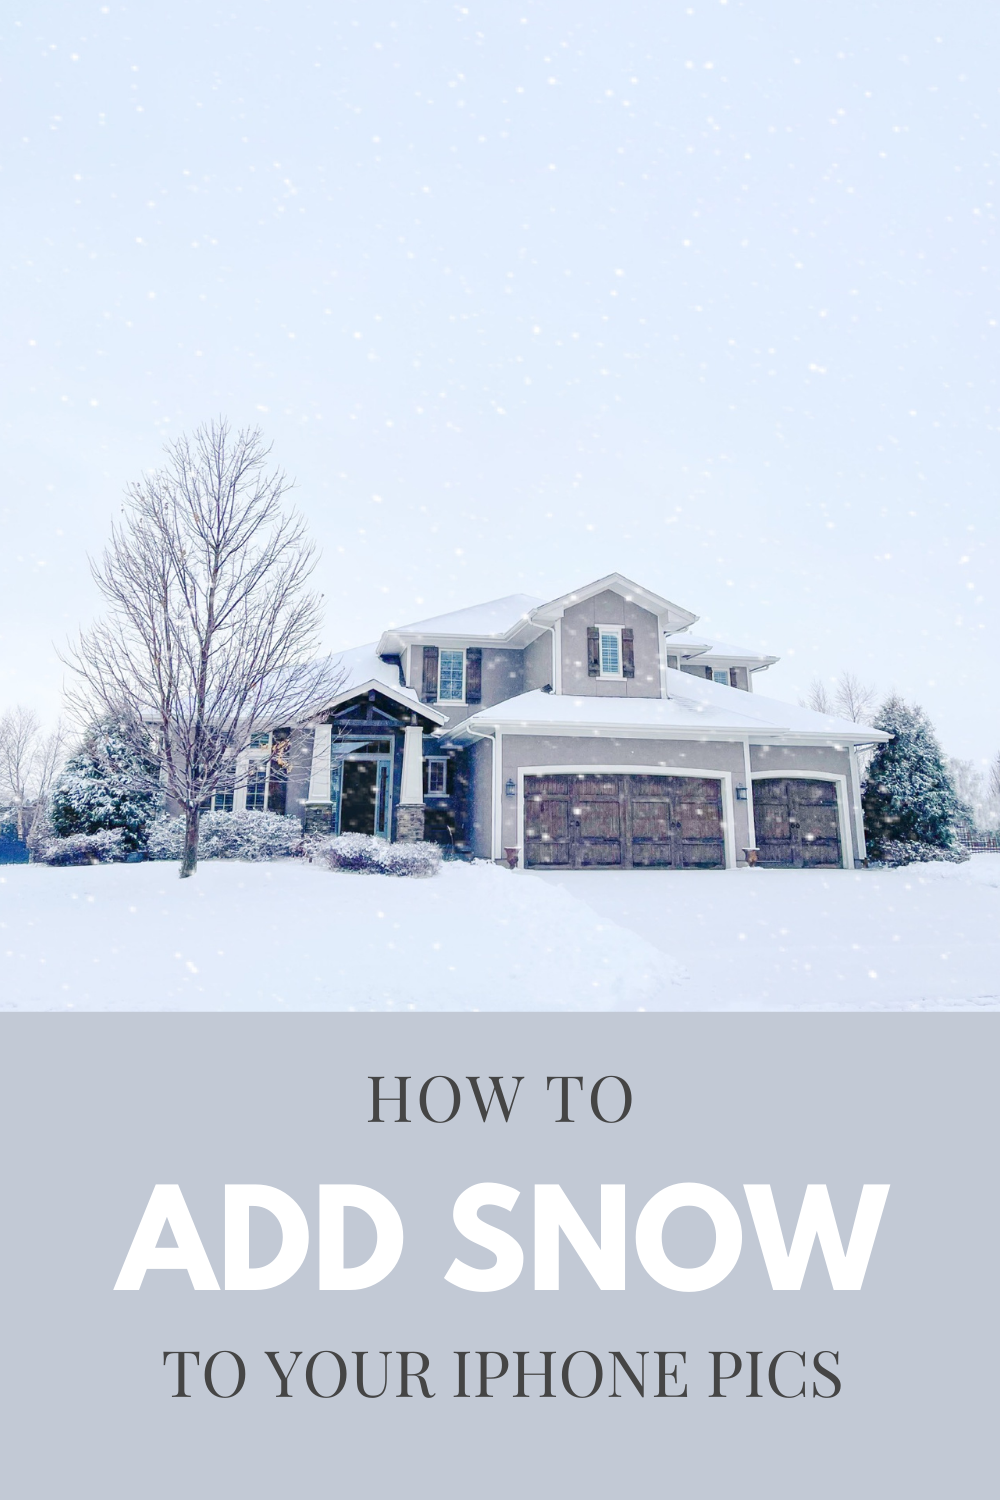 How to Add Snow to a Photo on iPhone for FREE! Choose from a static or animated snowfall effect for photos with these detailed instructions! Add snow to iPhone photos to make them Instagram worthy in no time! #instagram #snow #iphonephotography